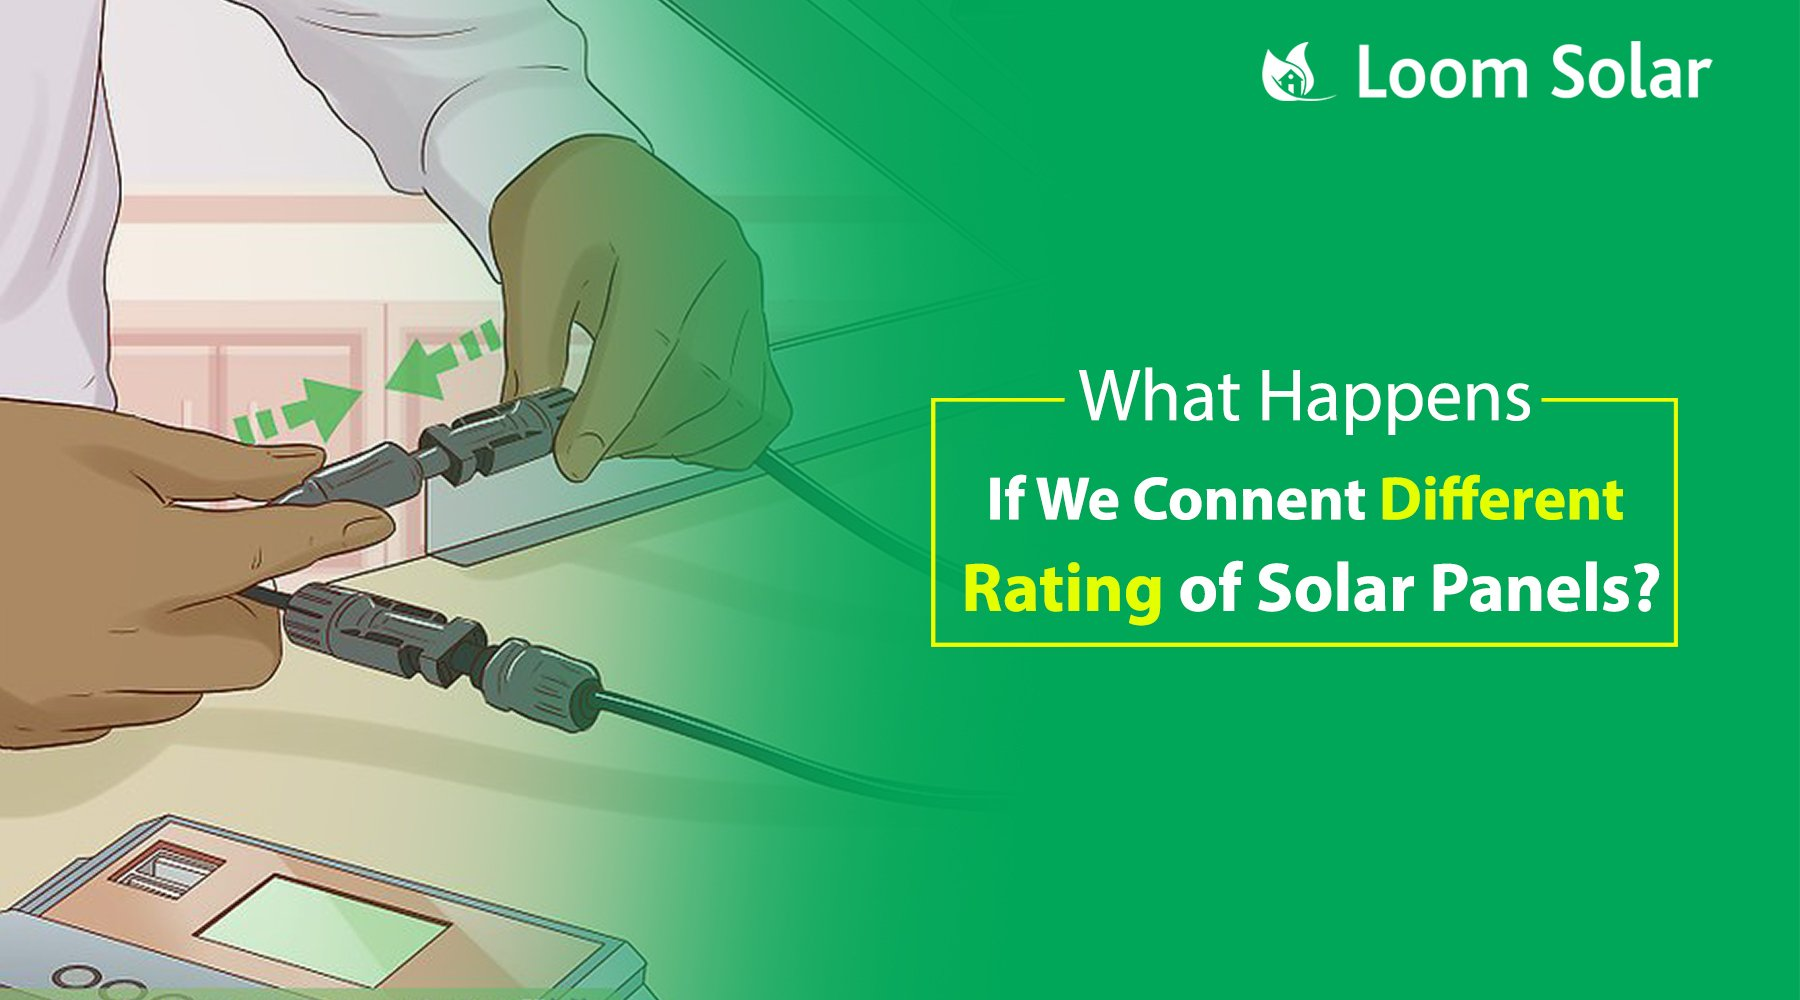 Connecting Different Rating of Solar Panels?